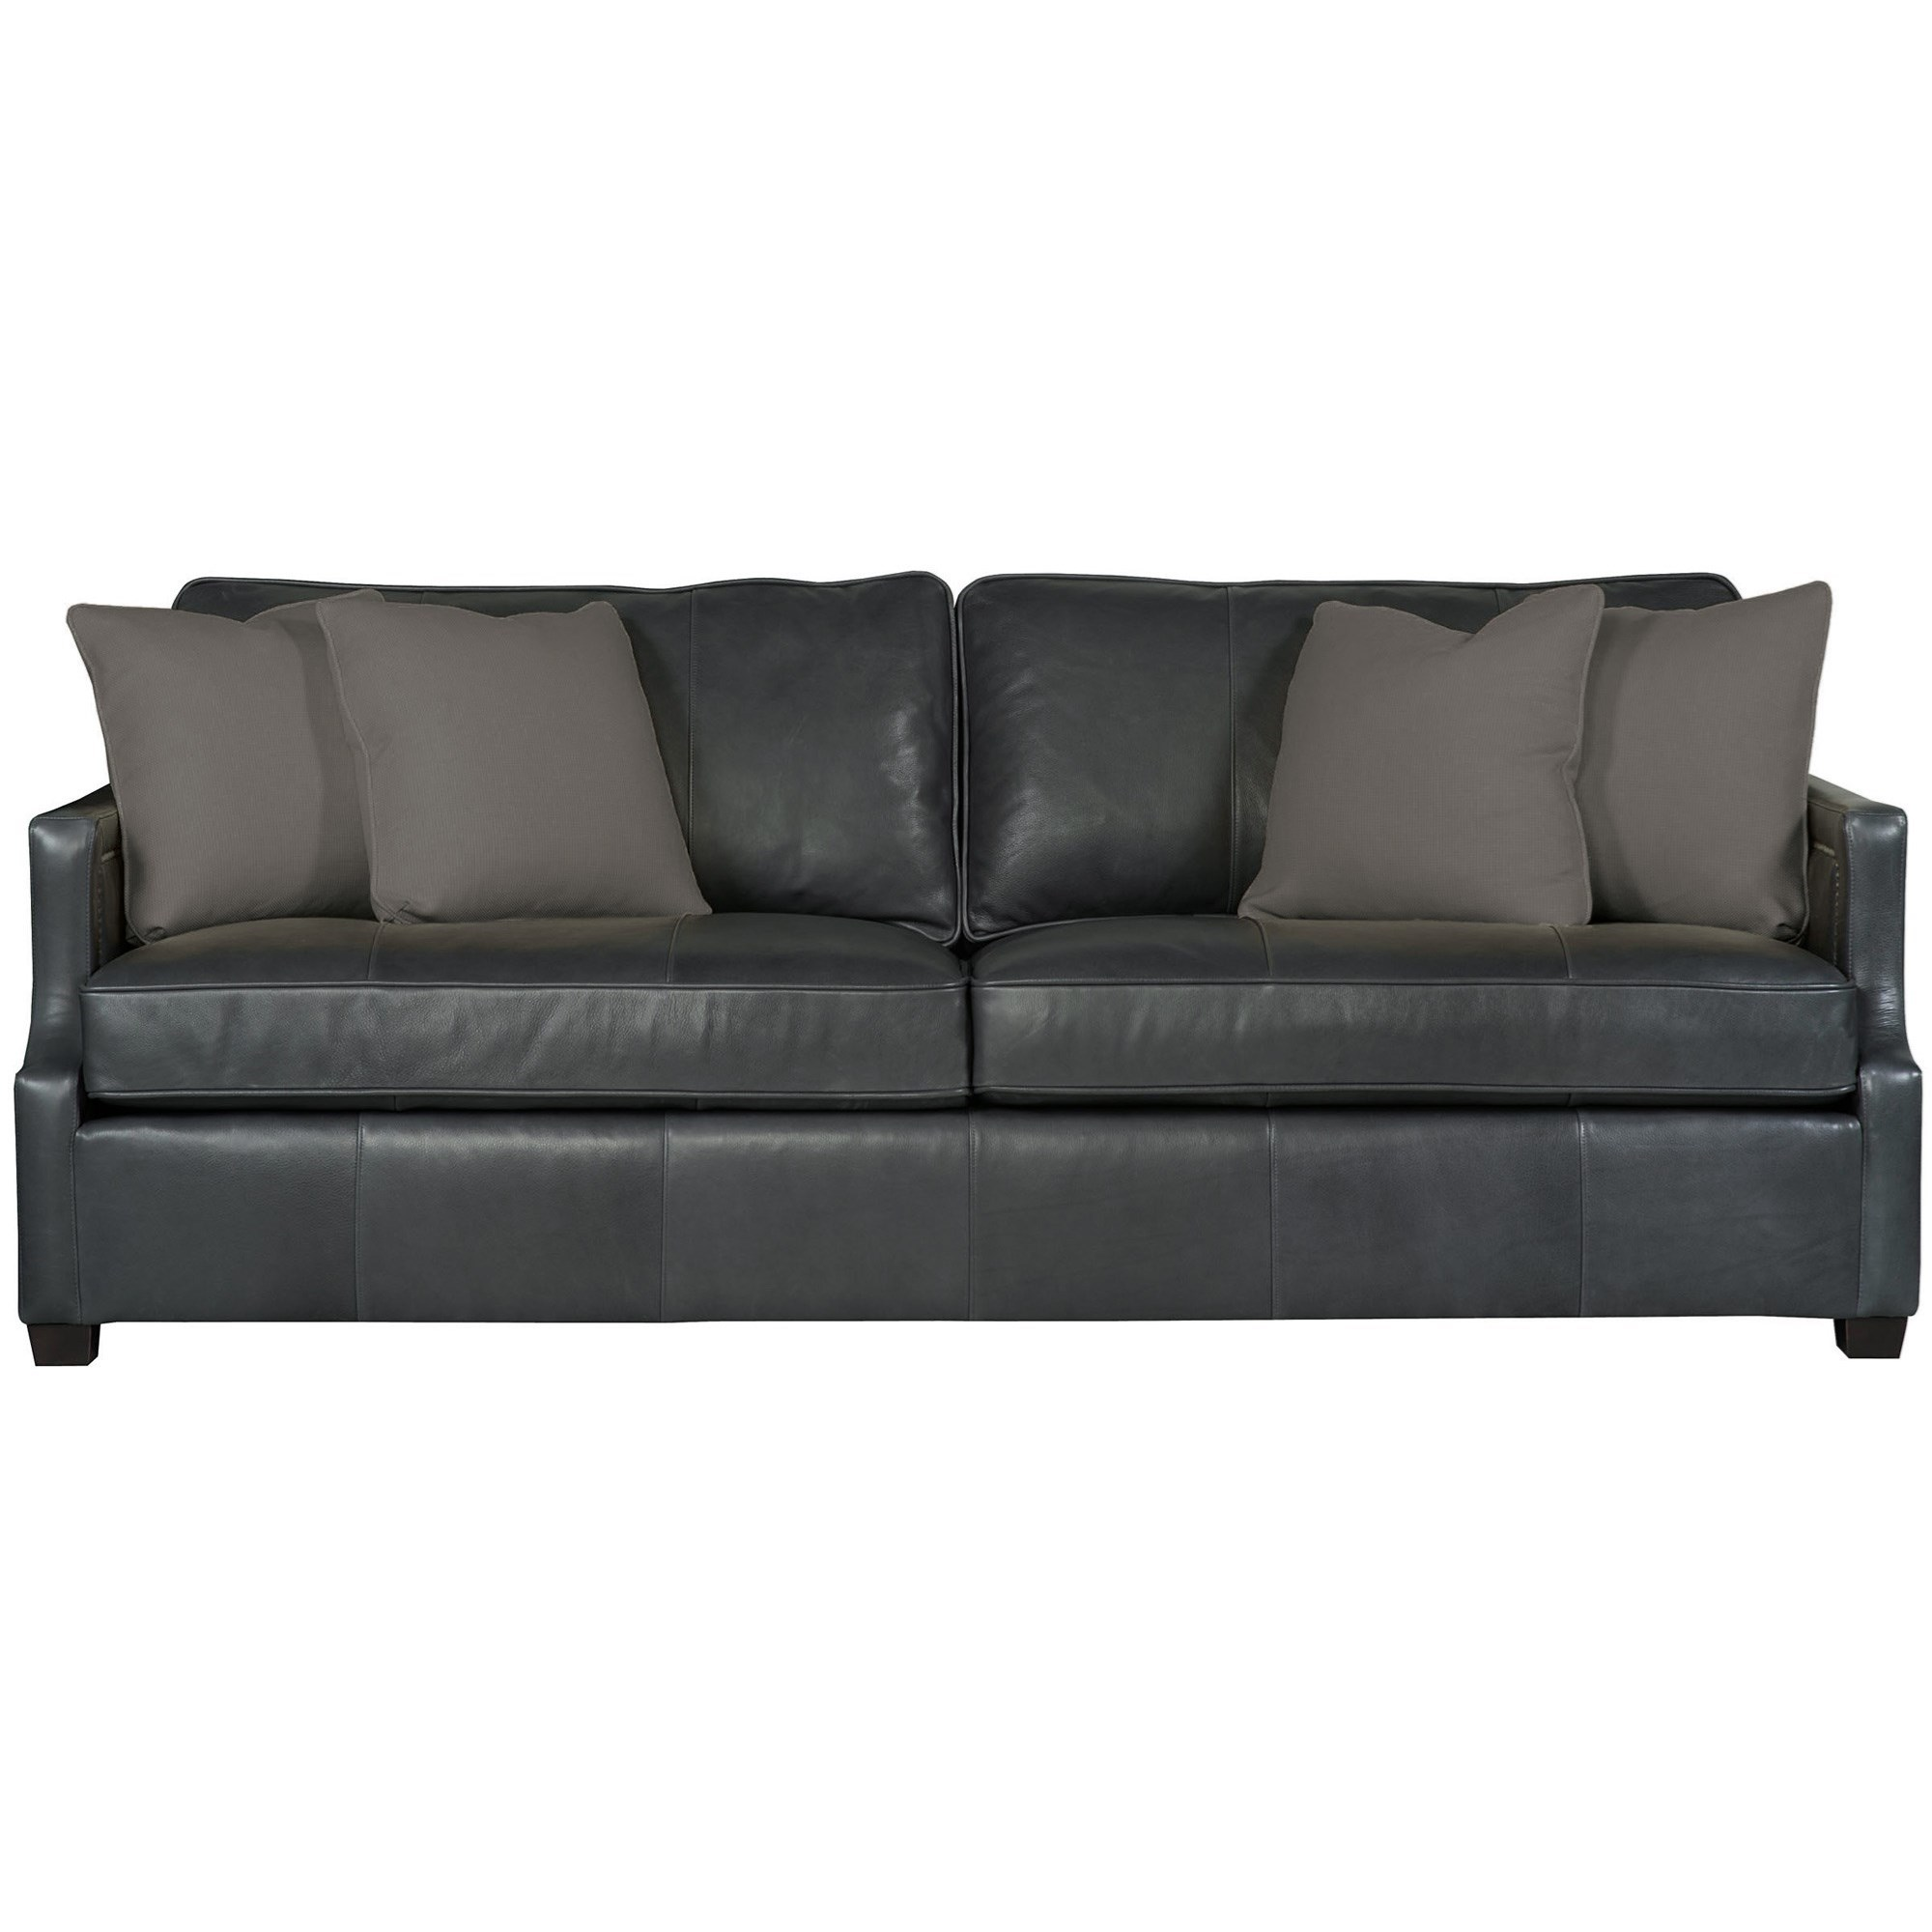 Bernhardt Clinton Sofa With Contemporary Transitional Style Jacksonville Furniture Mart Sofas